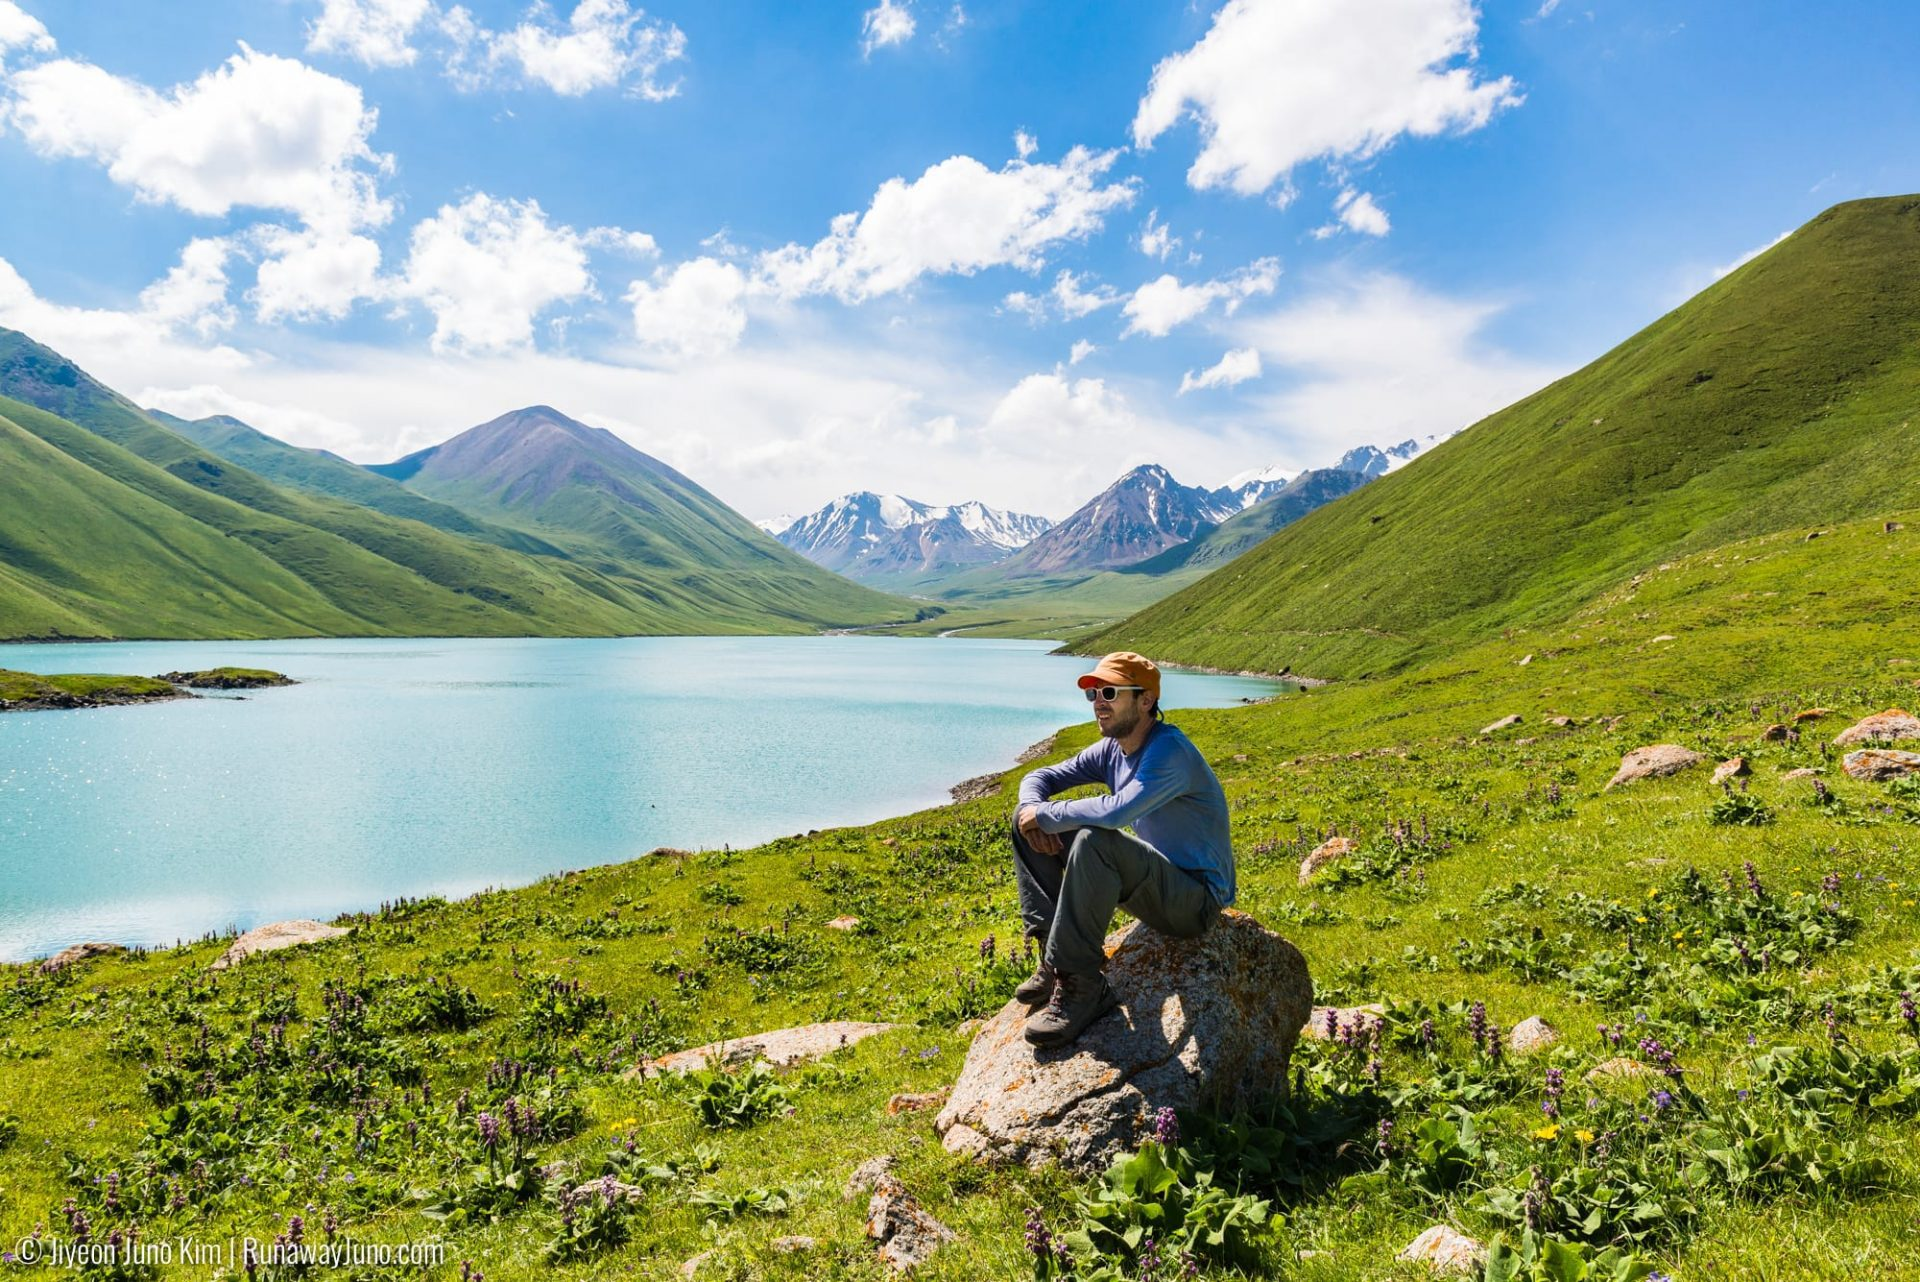 Photos Best Of Kyrgyzstan In Photos Part 1 You Have To See It To